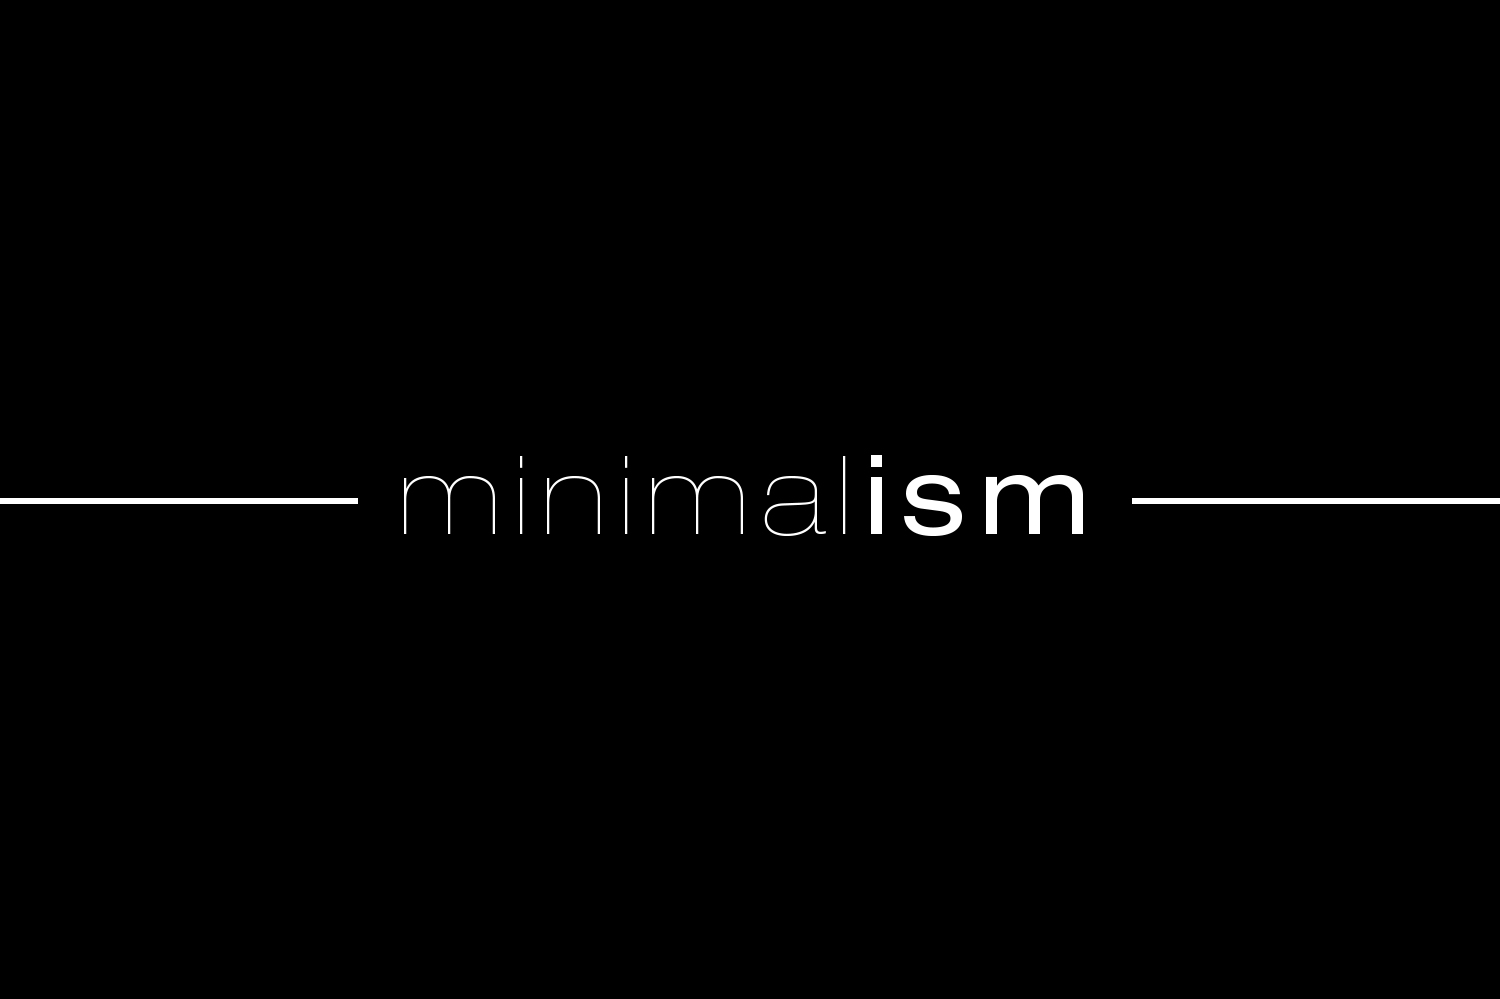 minimalism text white on black